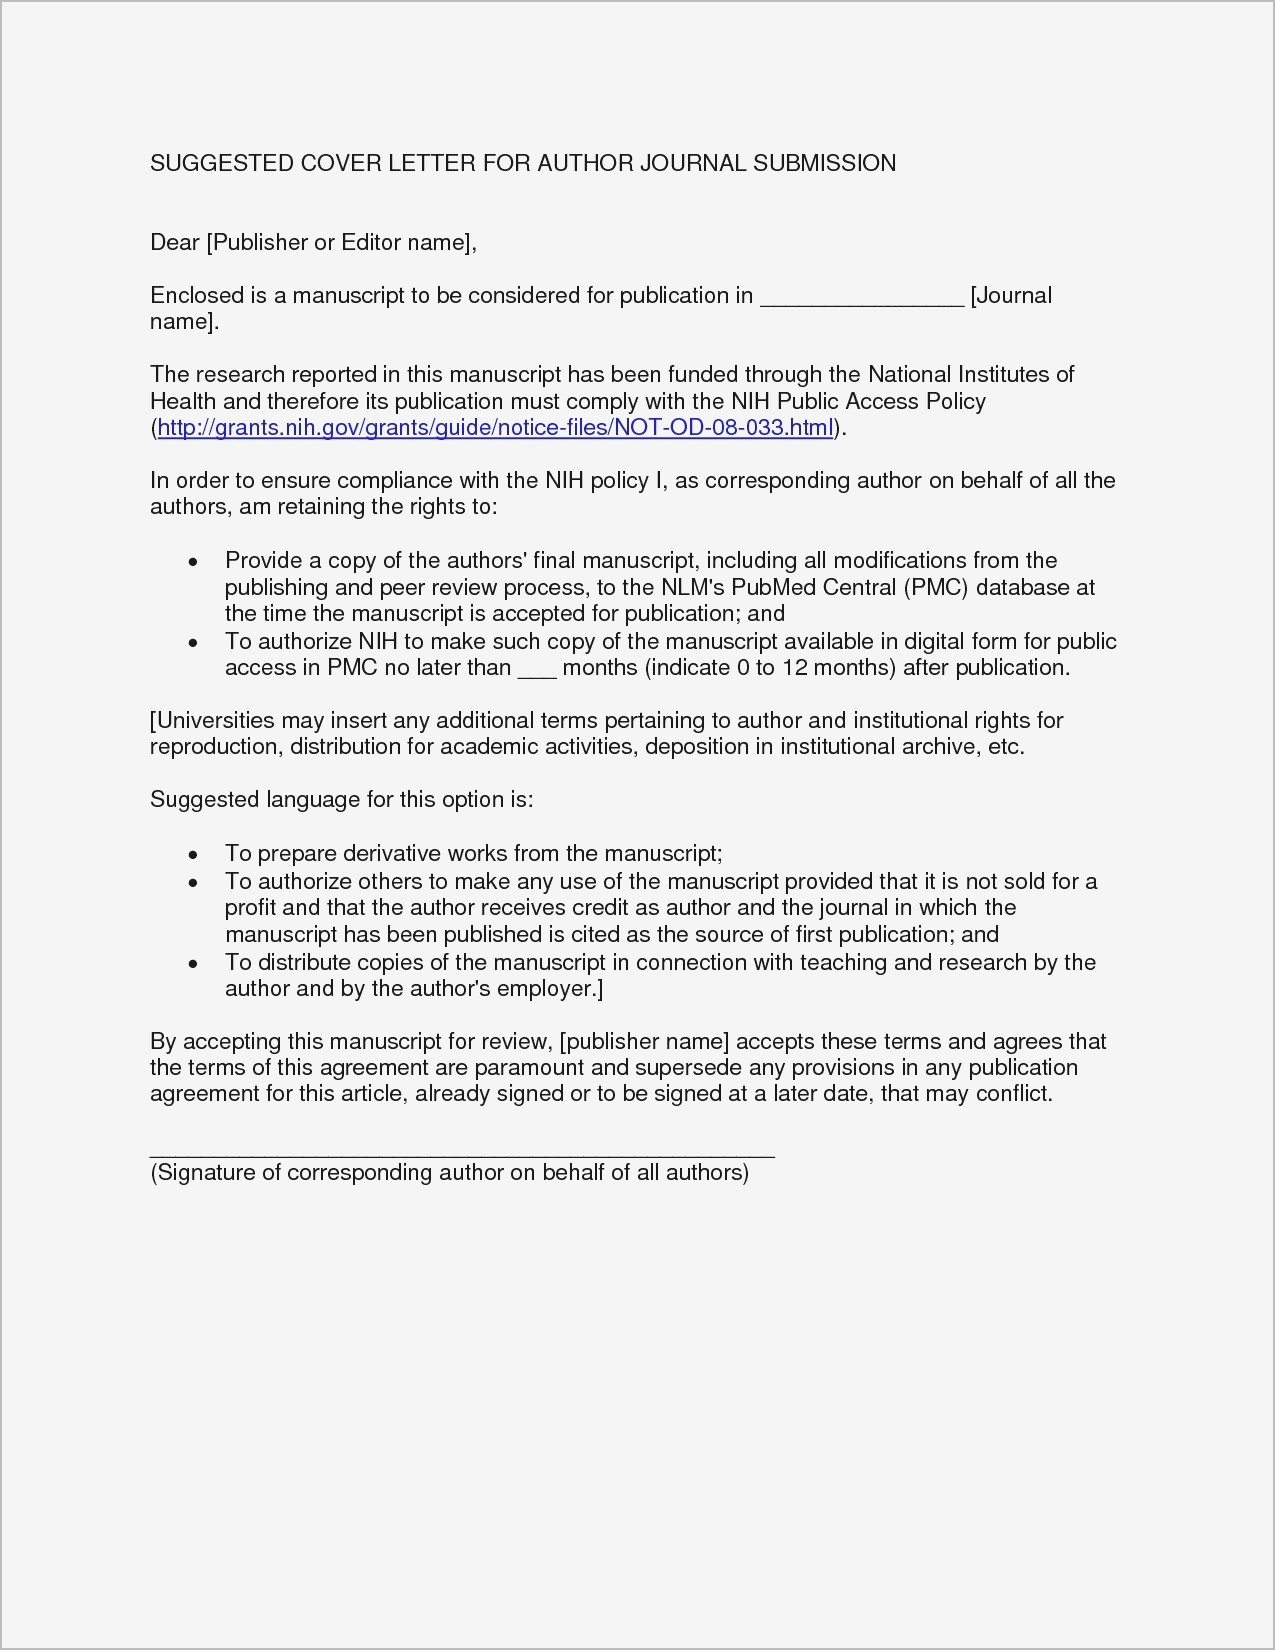 Grant Cover Letter Template - Writing Business Requirements Template Best Fax Cover Letter